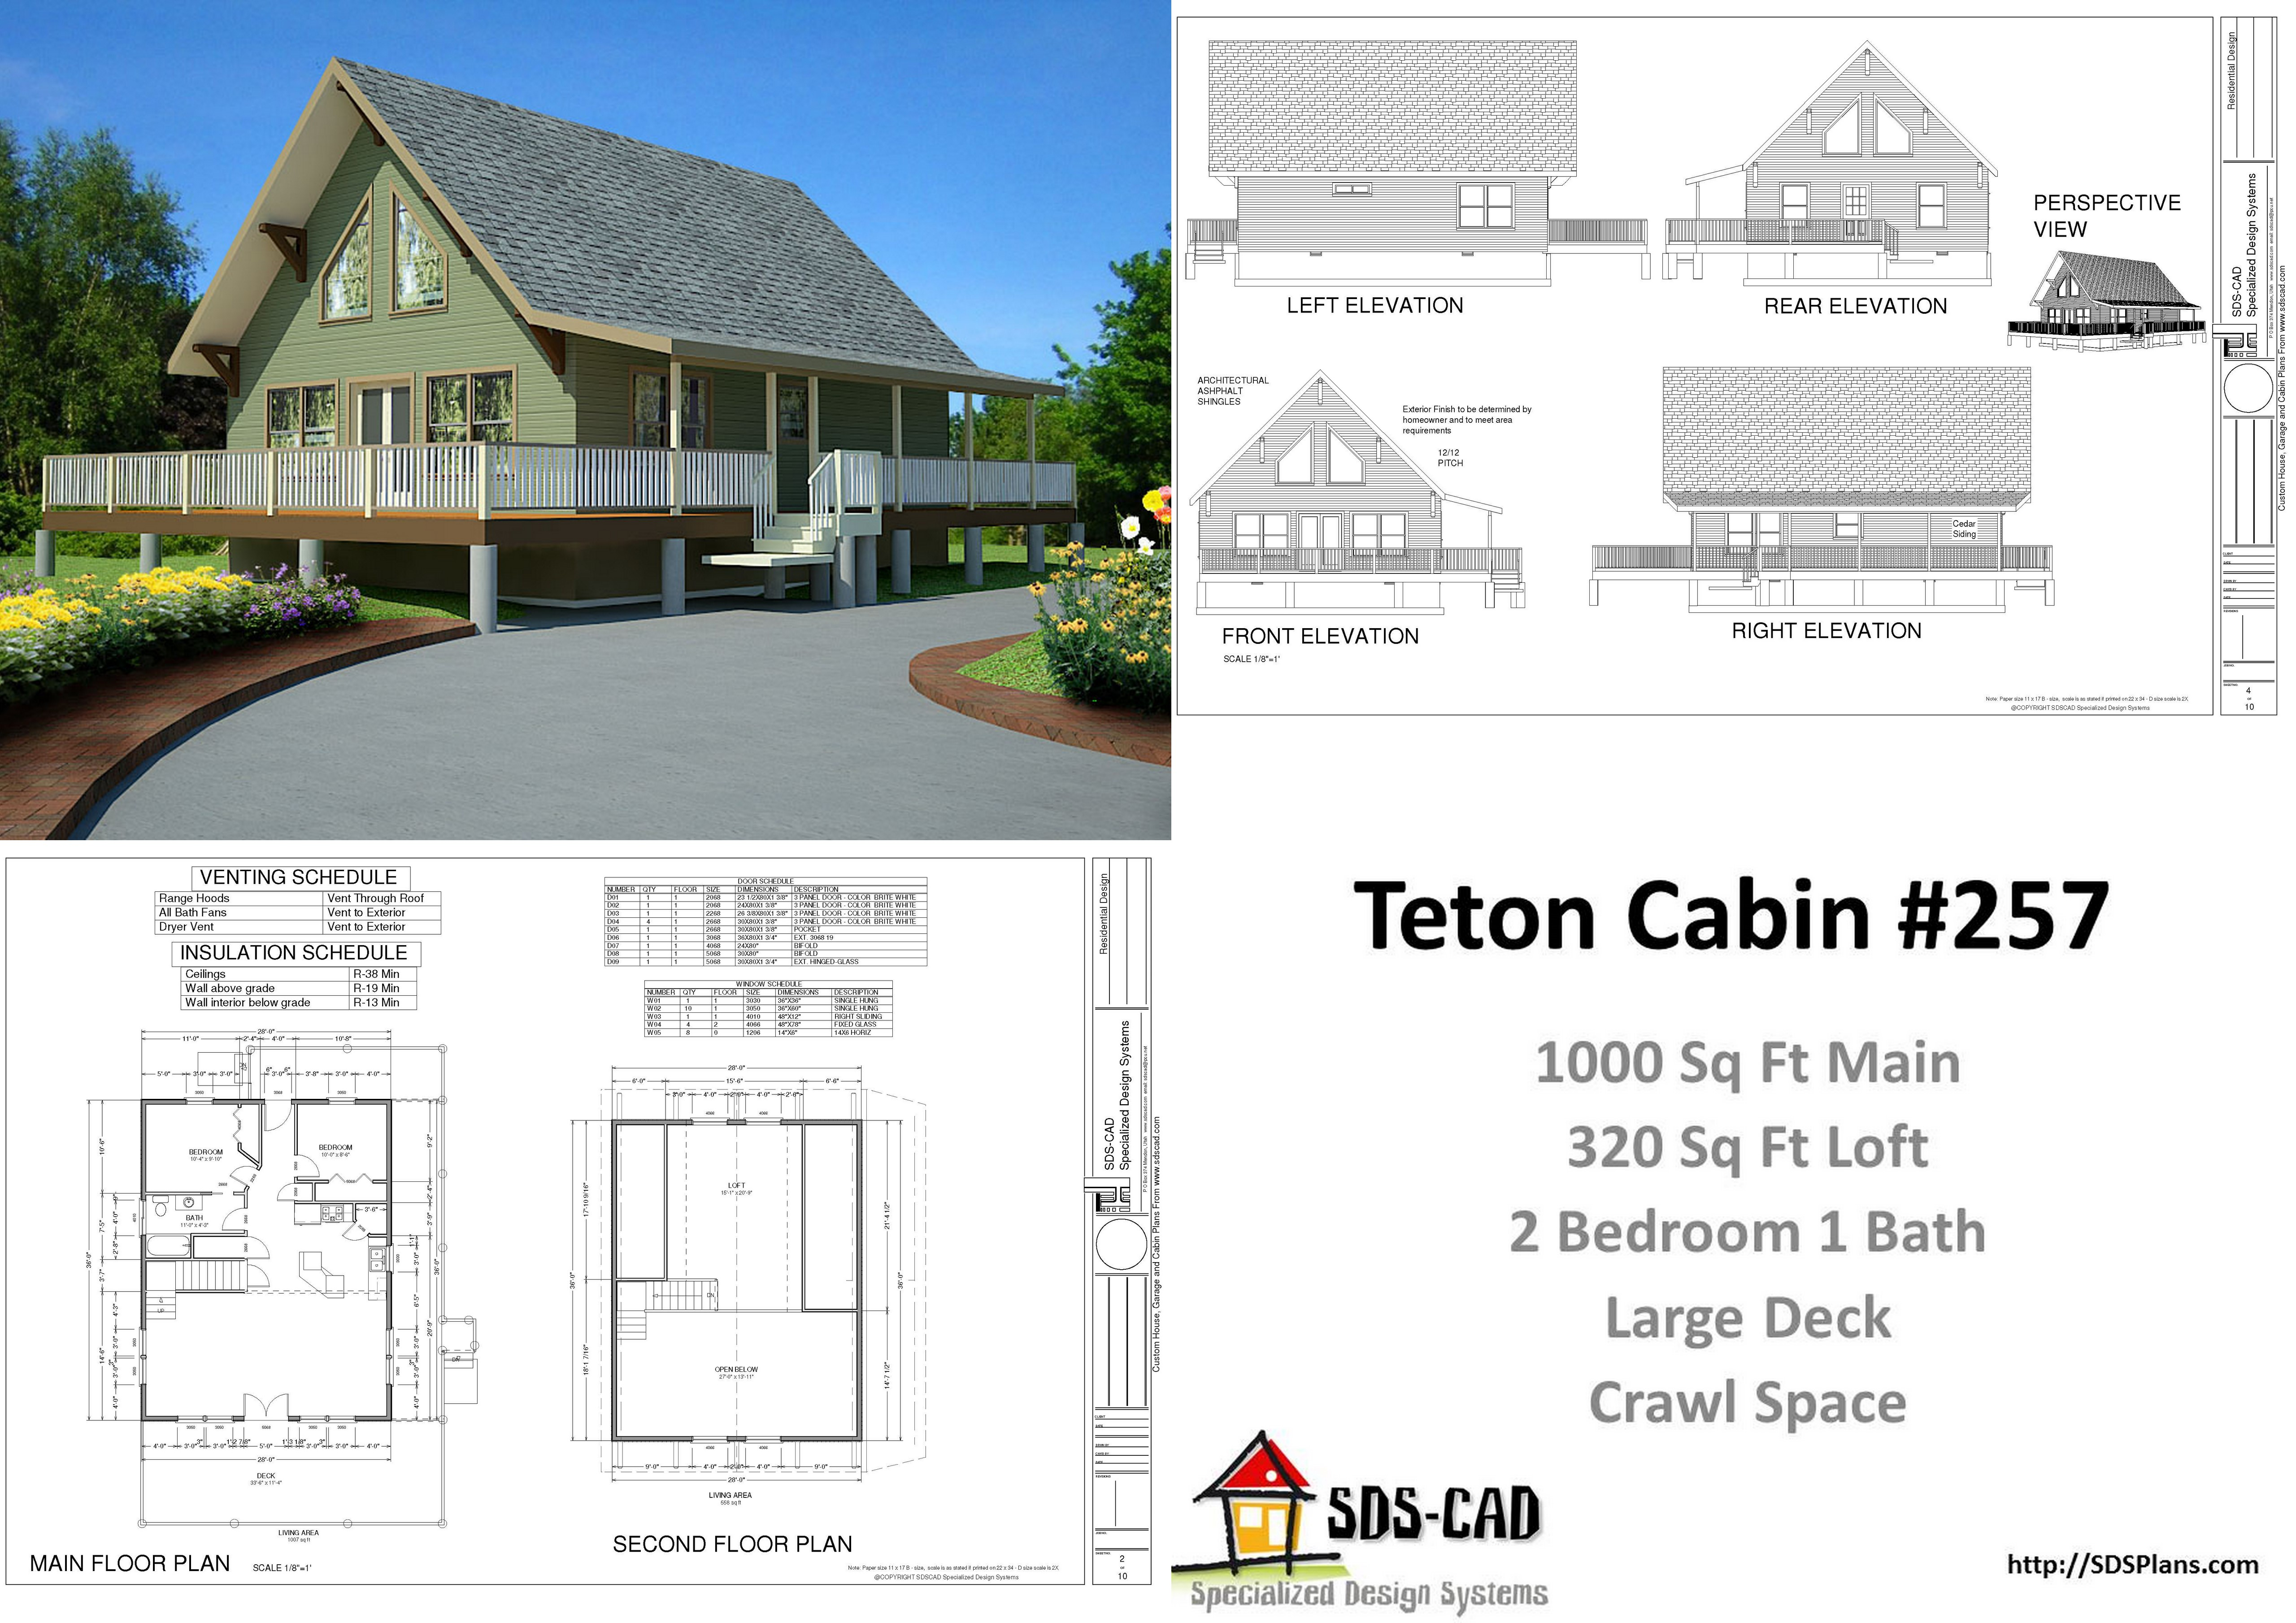 H257 1000 sq ft custom cabin design with crawl space pdf for Crawl space house plans